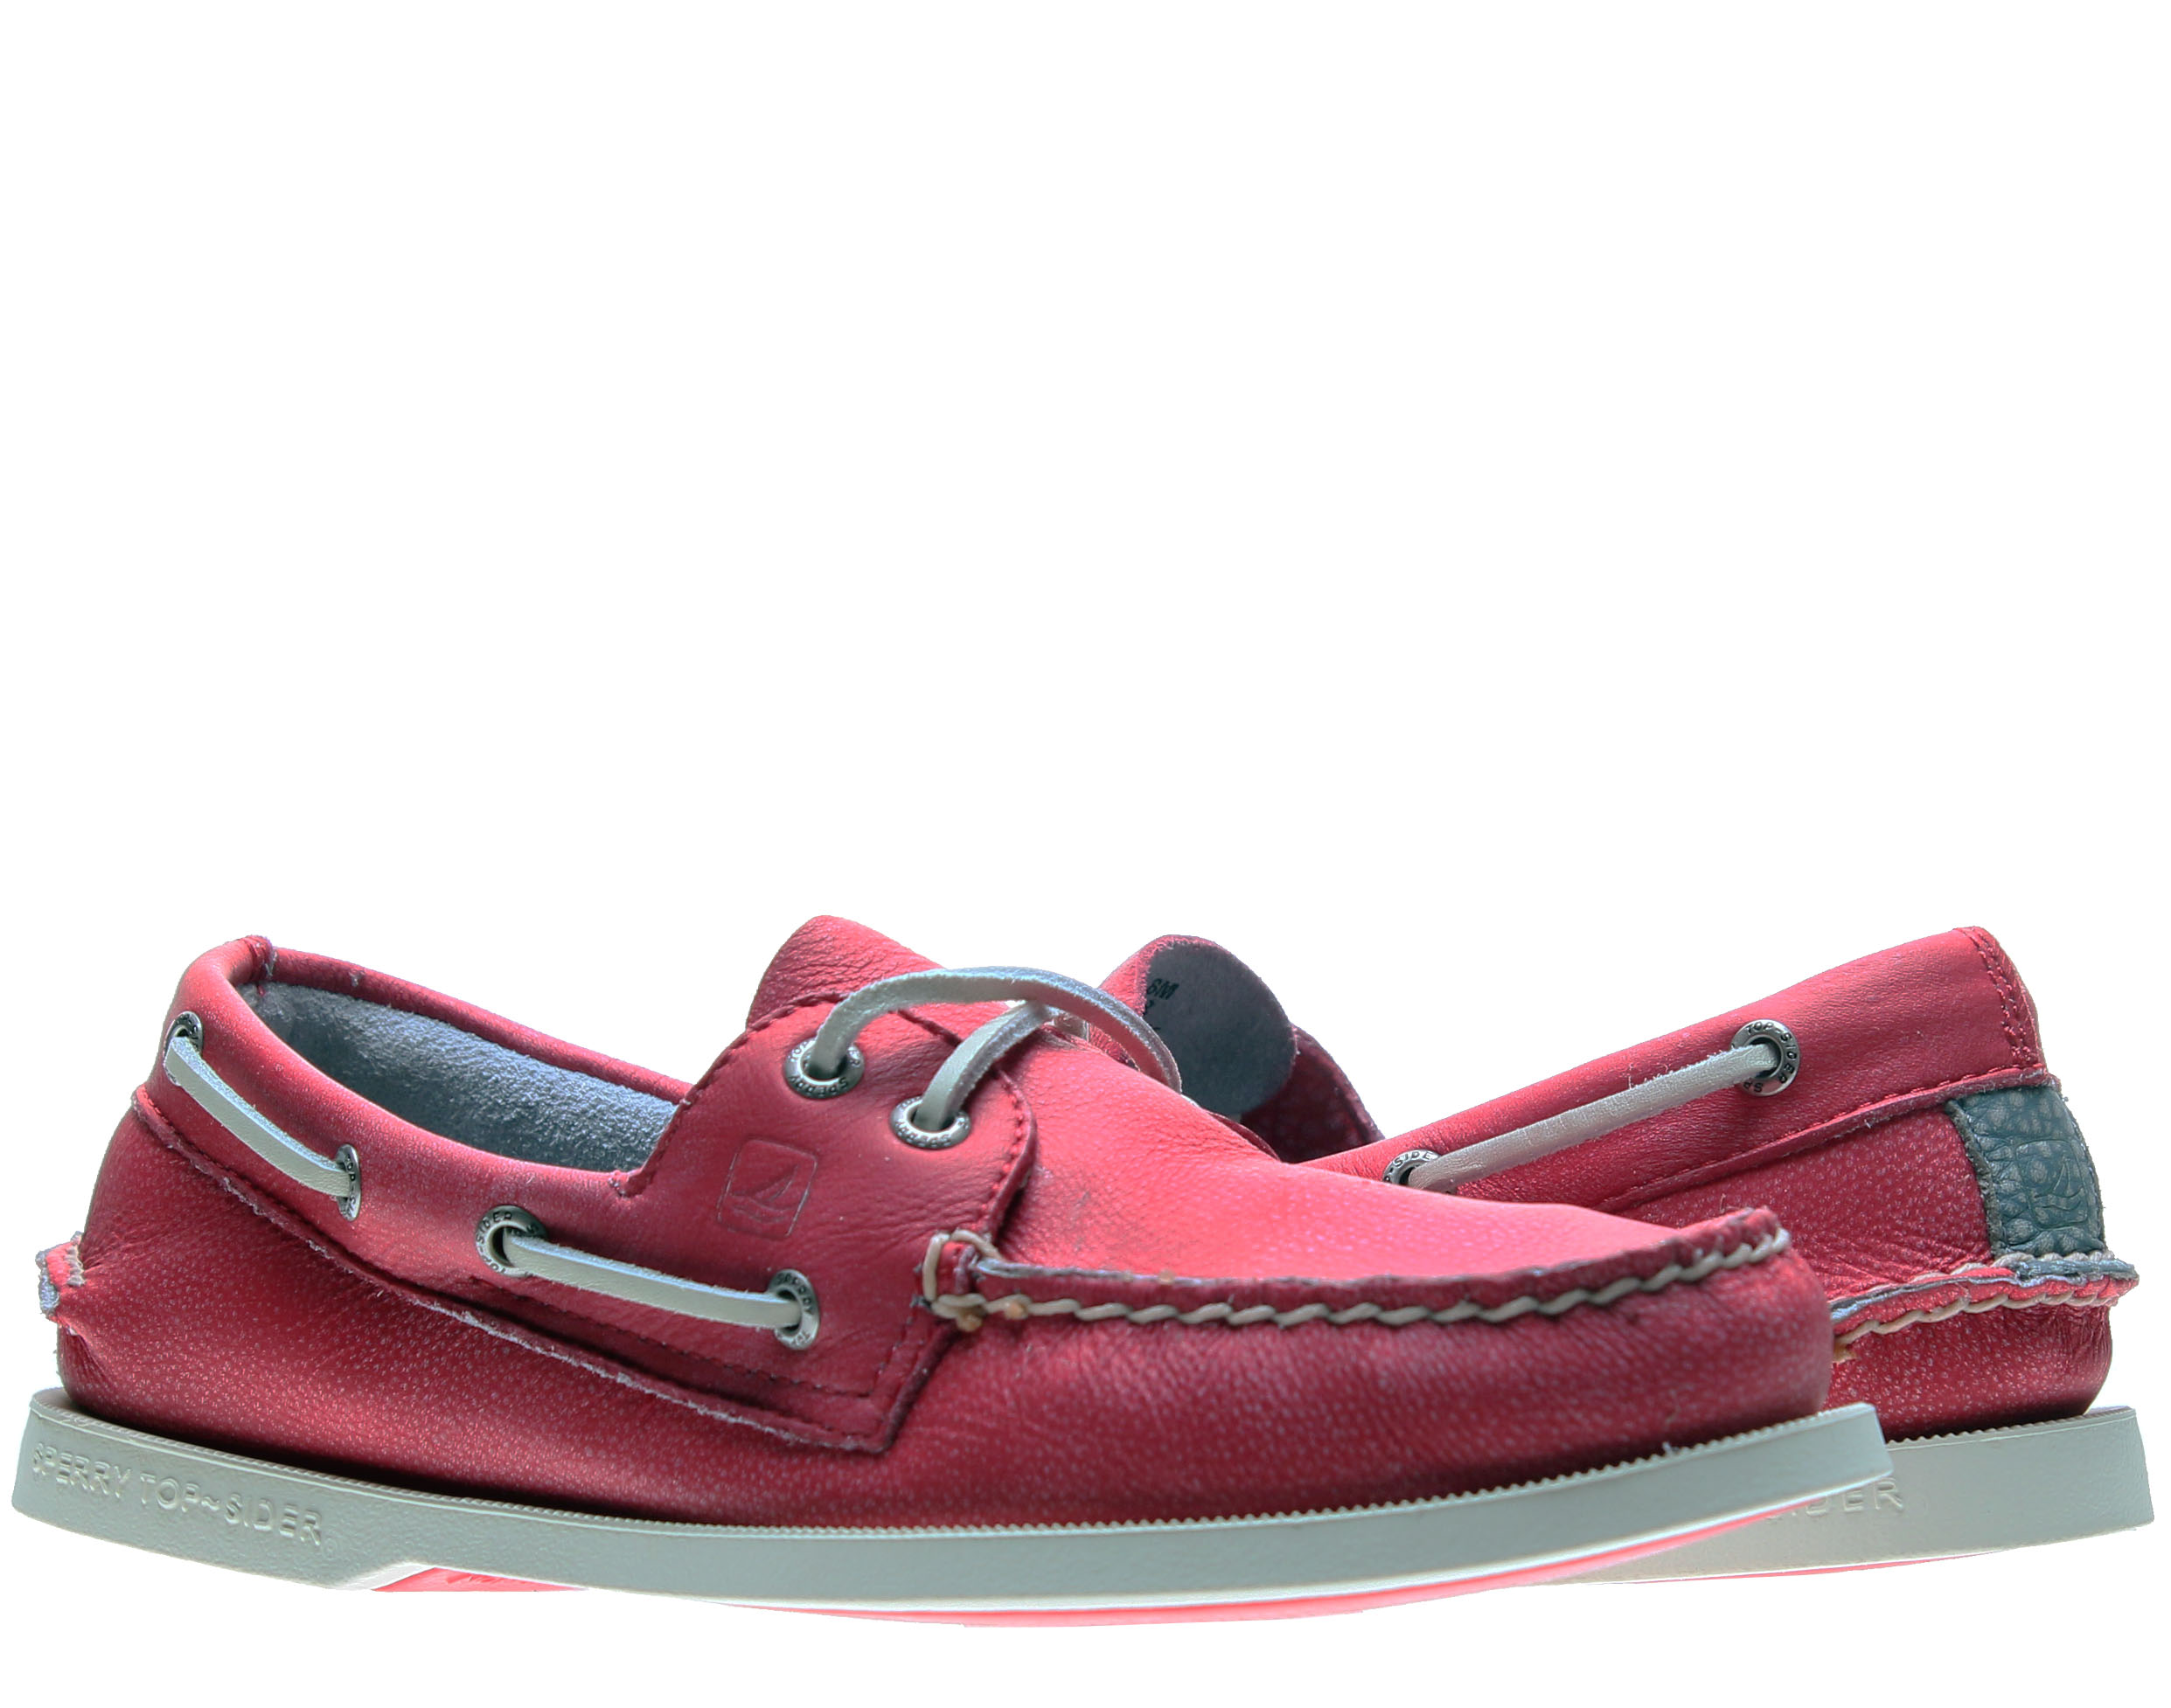 Sperry Top Sider Authentic Original Red Washed 2-Eye Men's Boat Shoes 1049378 by